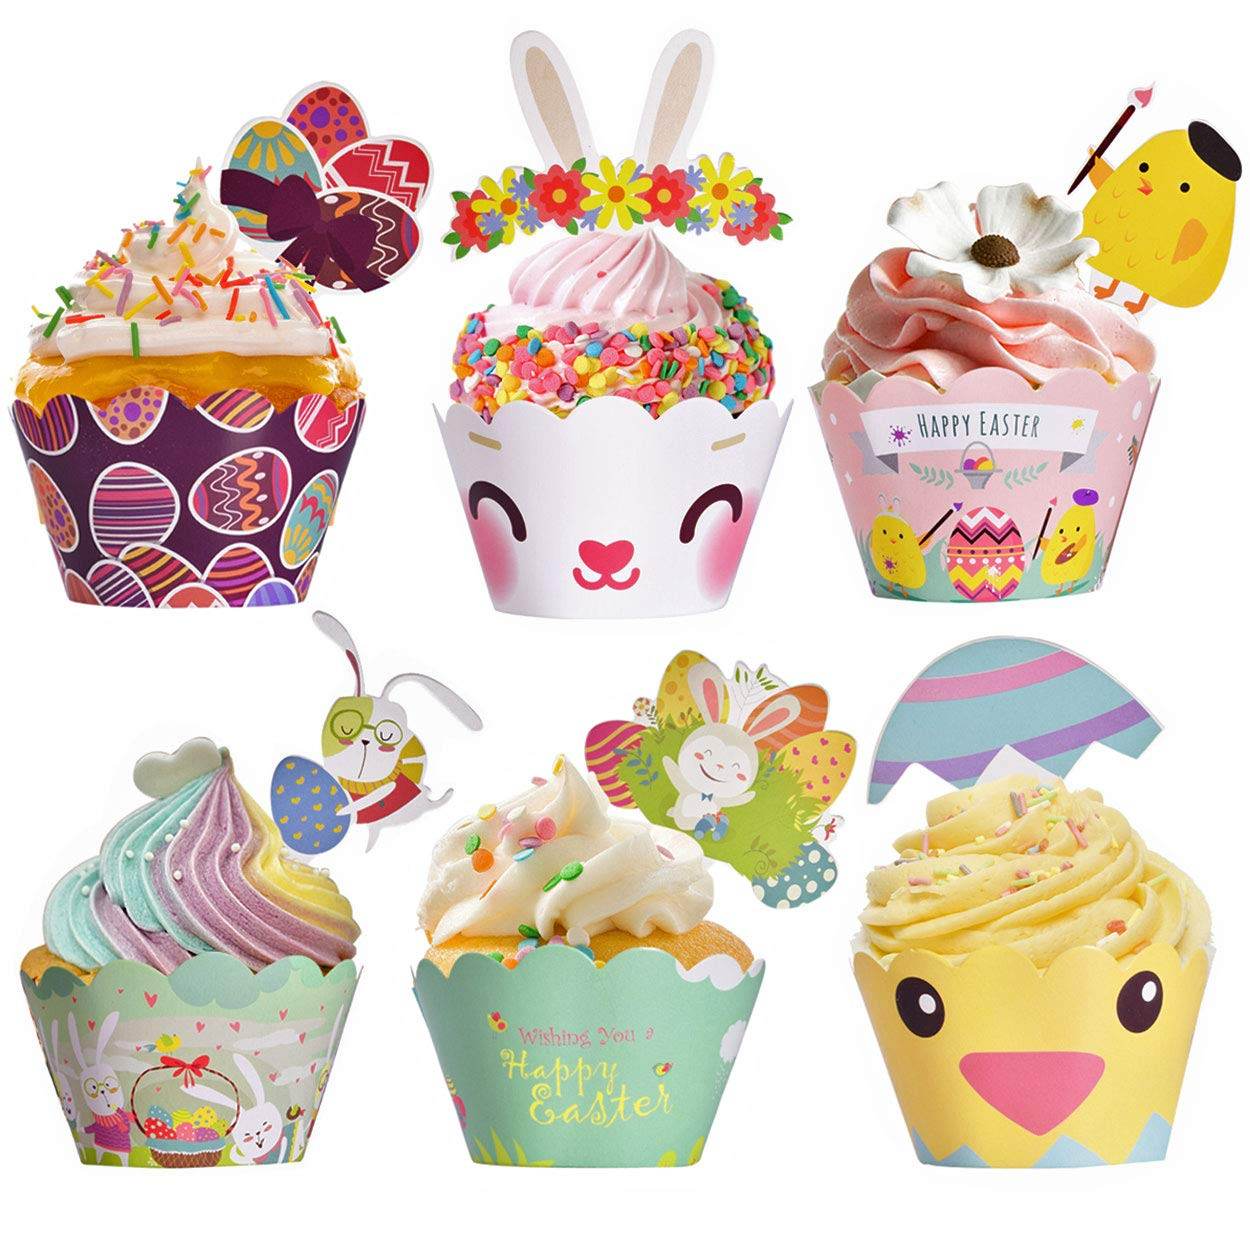 Easter Cupcake Wrappers Toppers Liners Decorations Kit Bunny Paper Baking  Party Supplies 48Pcs Easter Rabbit Egg Themed.